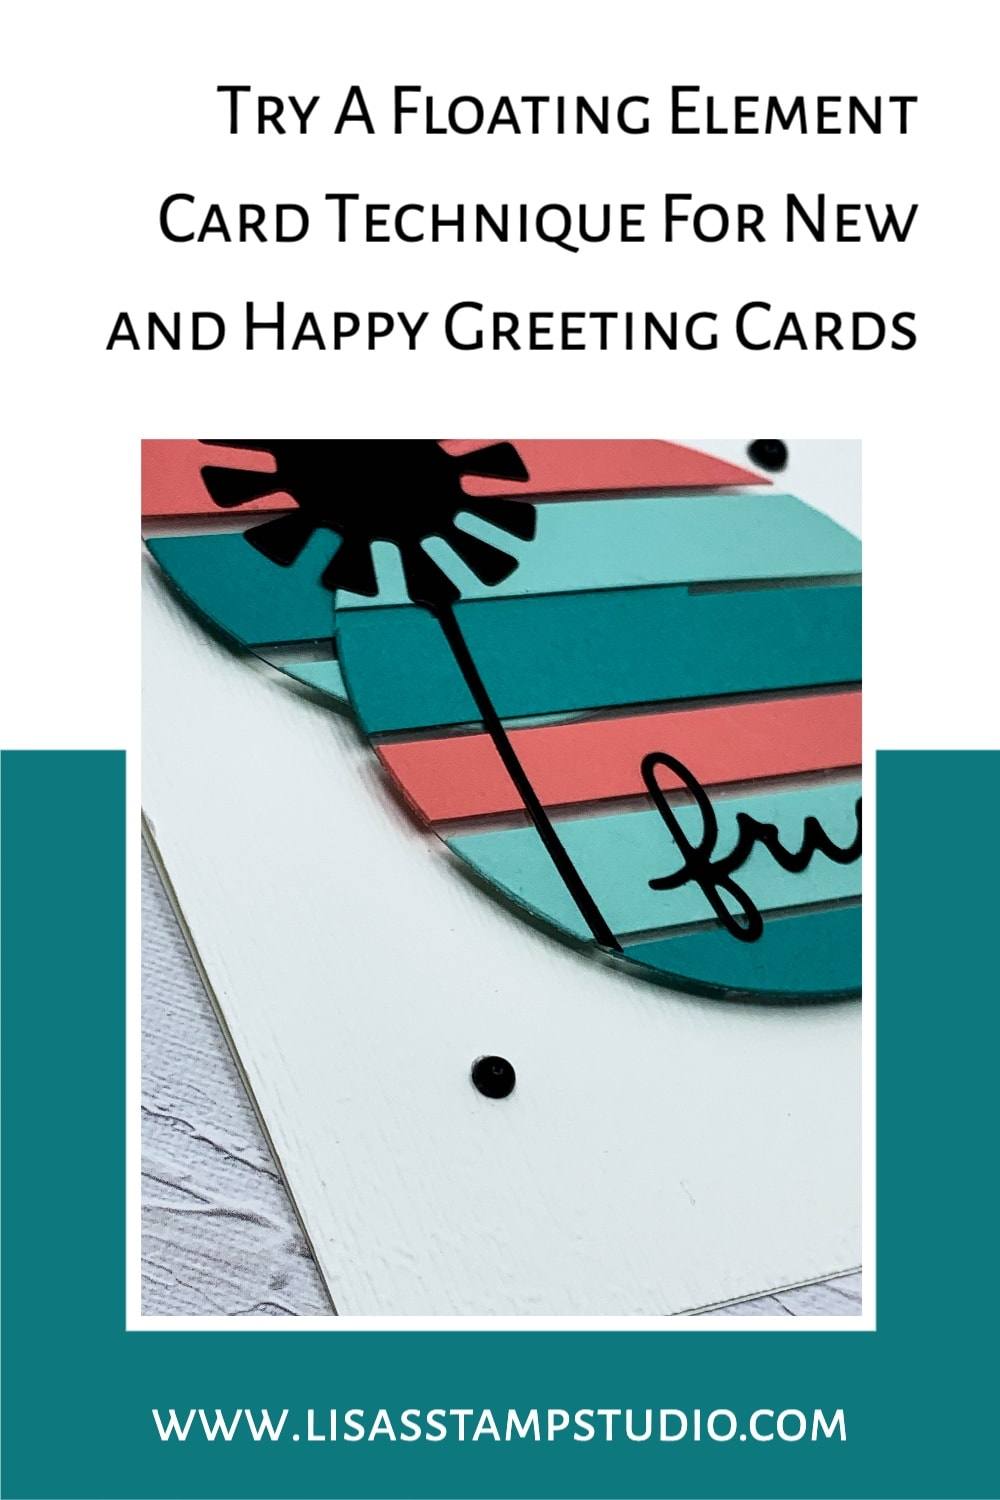 Save this card technique to your favorite Pinterest board